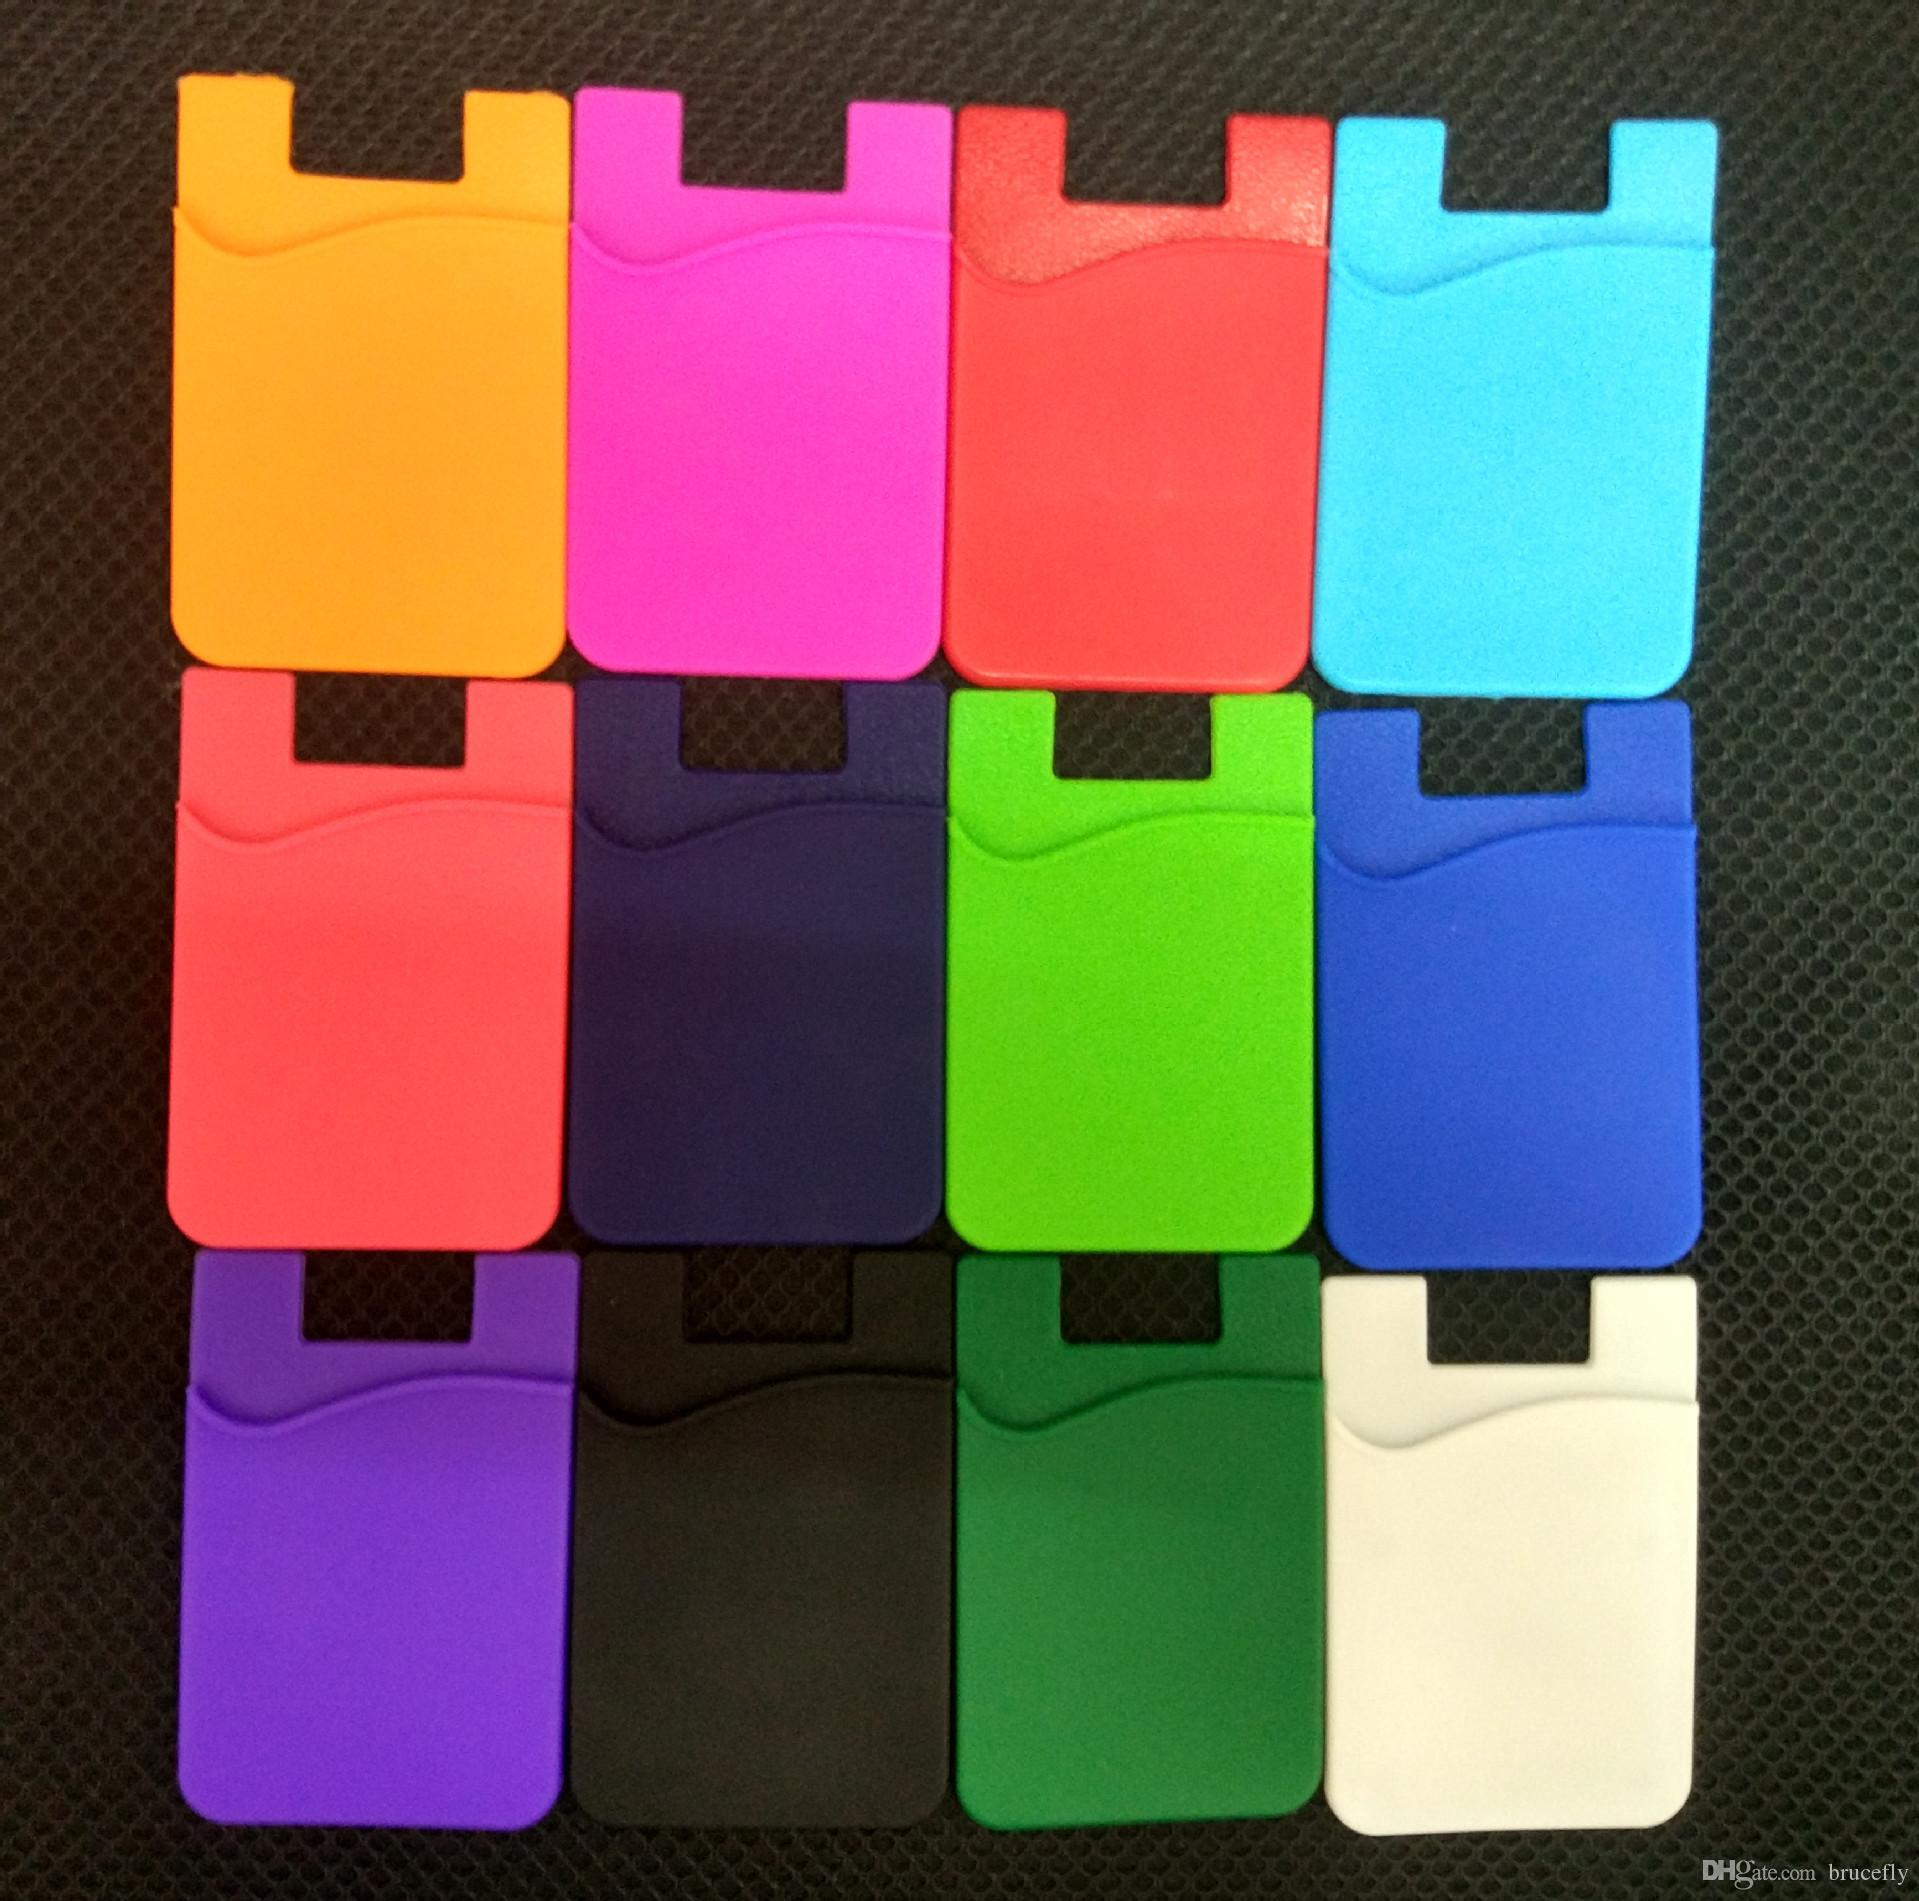 New arrival colourful business card holder stick on wallet phone new arrival colourful business card holder stick on wallet phone card phone card holder adhesive holder stick on phone back case cheap cell phone colourmoves